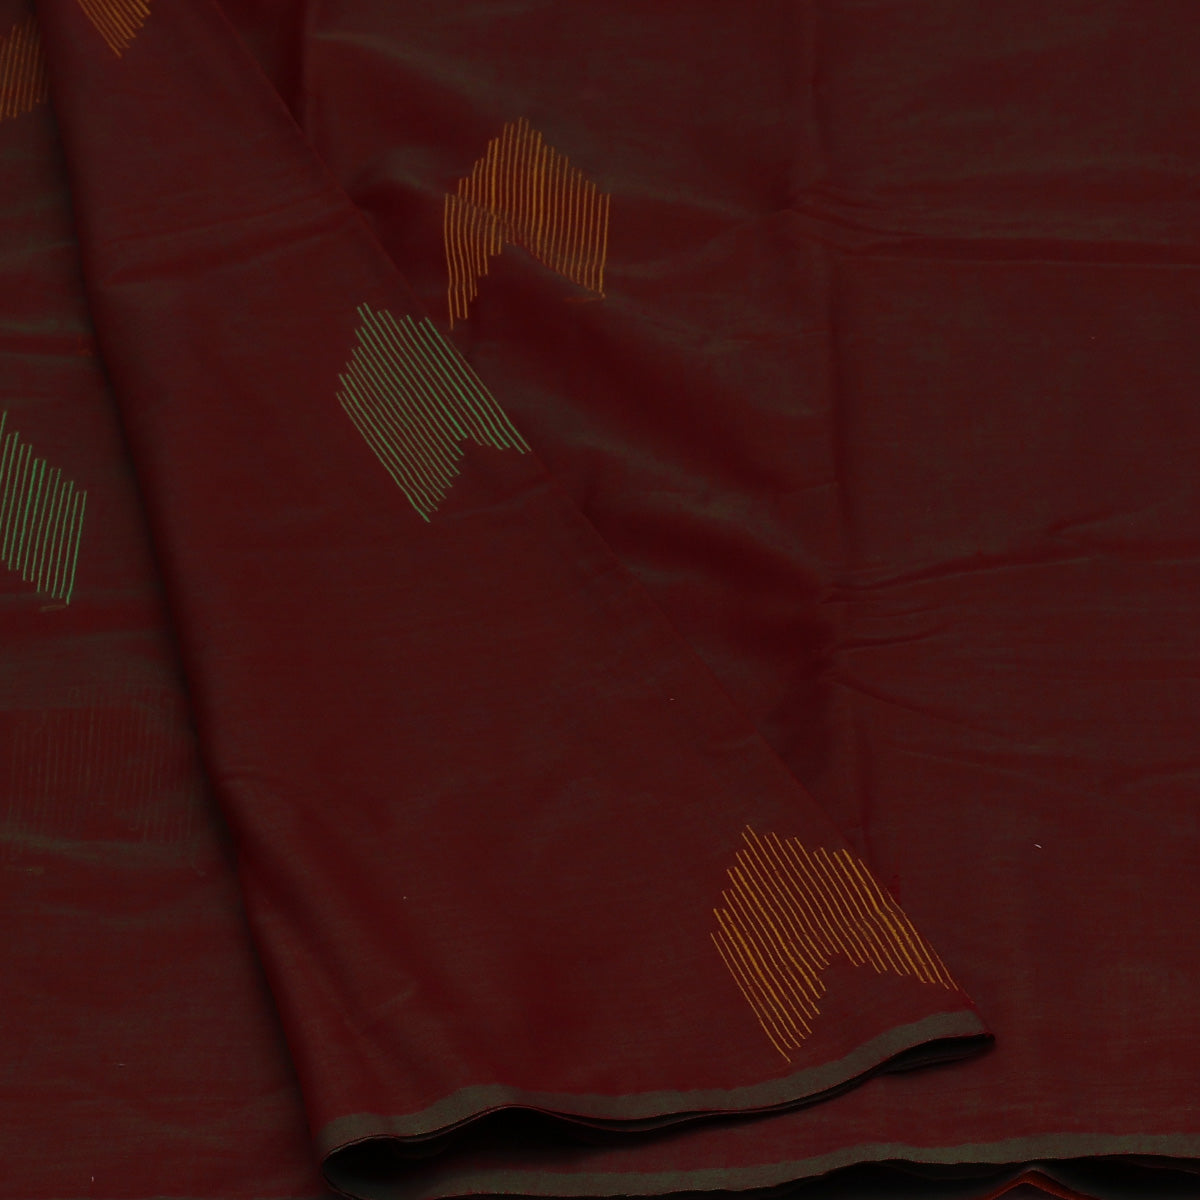 Kora Silk Saree Maroon with Green Dual shade and Honey Color with Simple Border